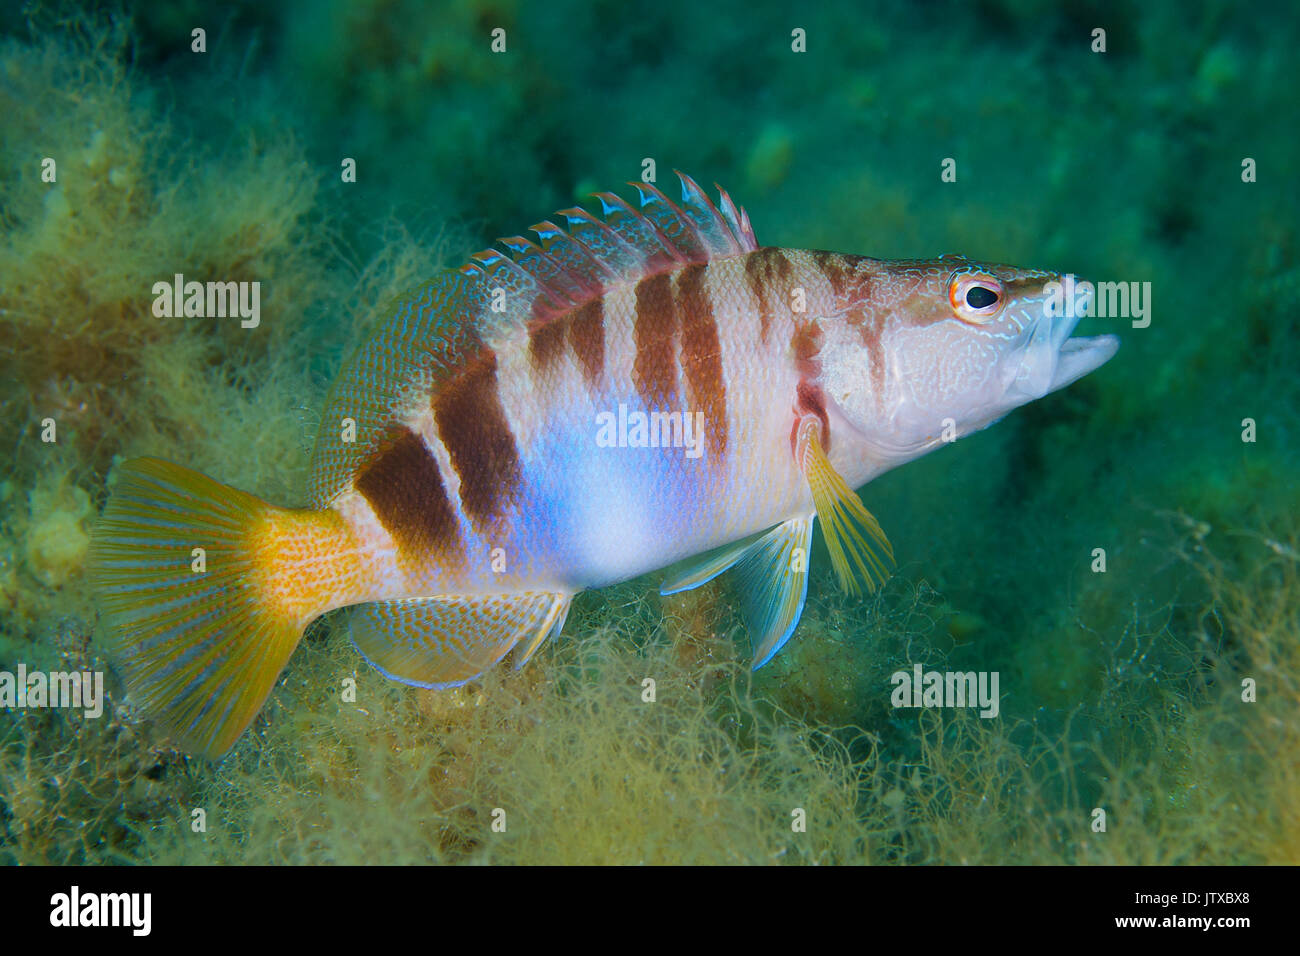 A painted comber (Serranus scriba) shows its colorful and cryptic design at Ses Salines Natural Park in Formentera (Balearic Islands, Spain) - Stock Image